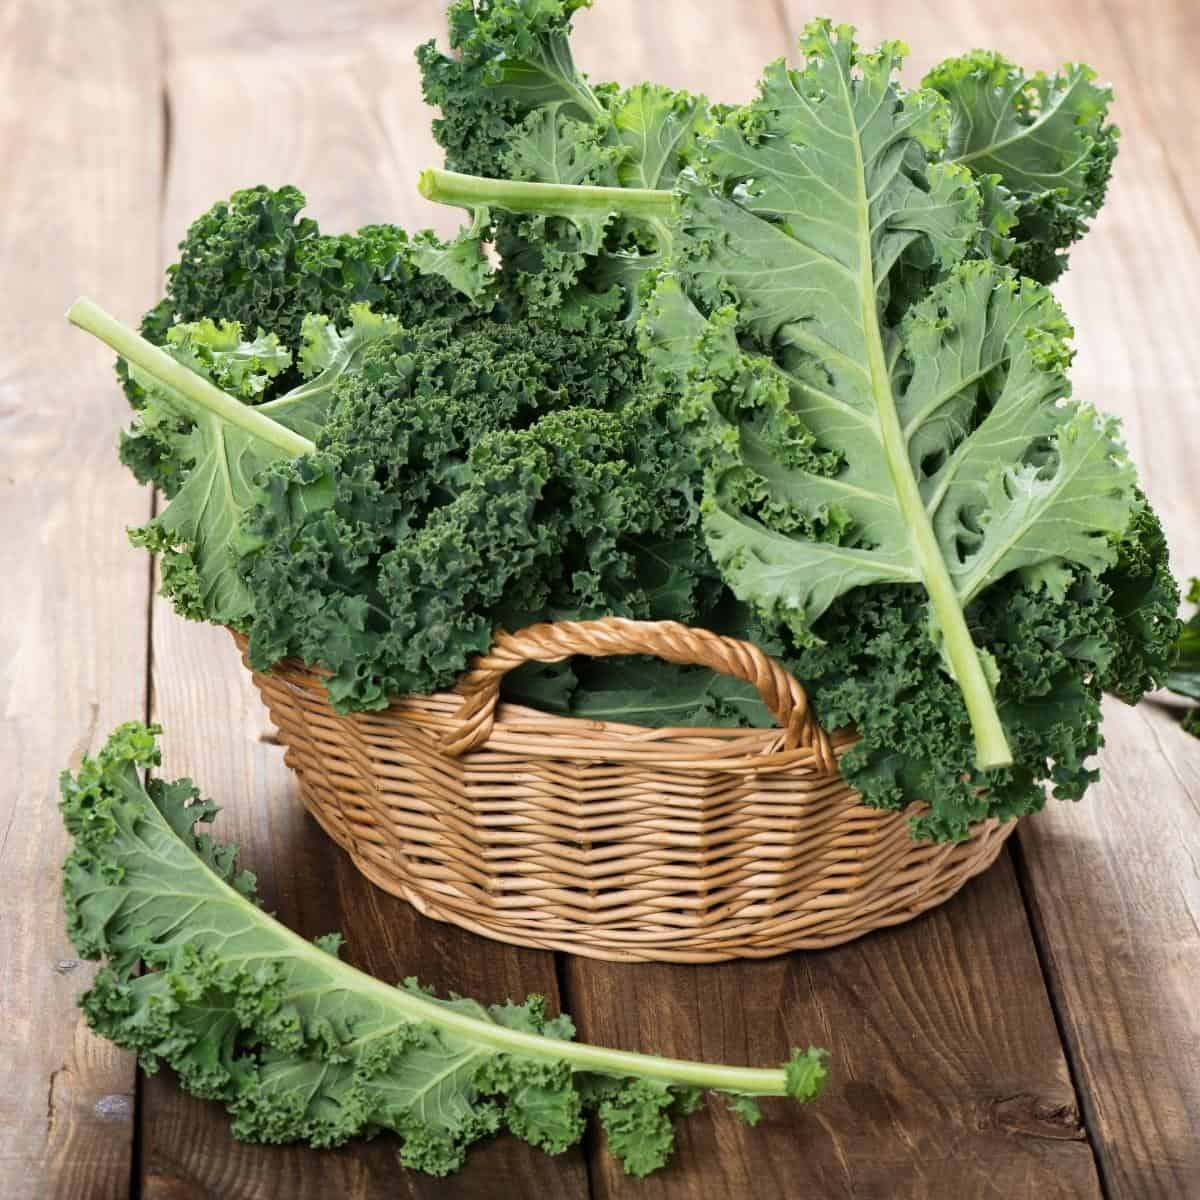 A basket of fresh kale